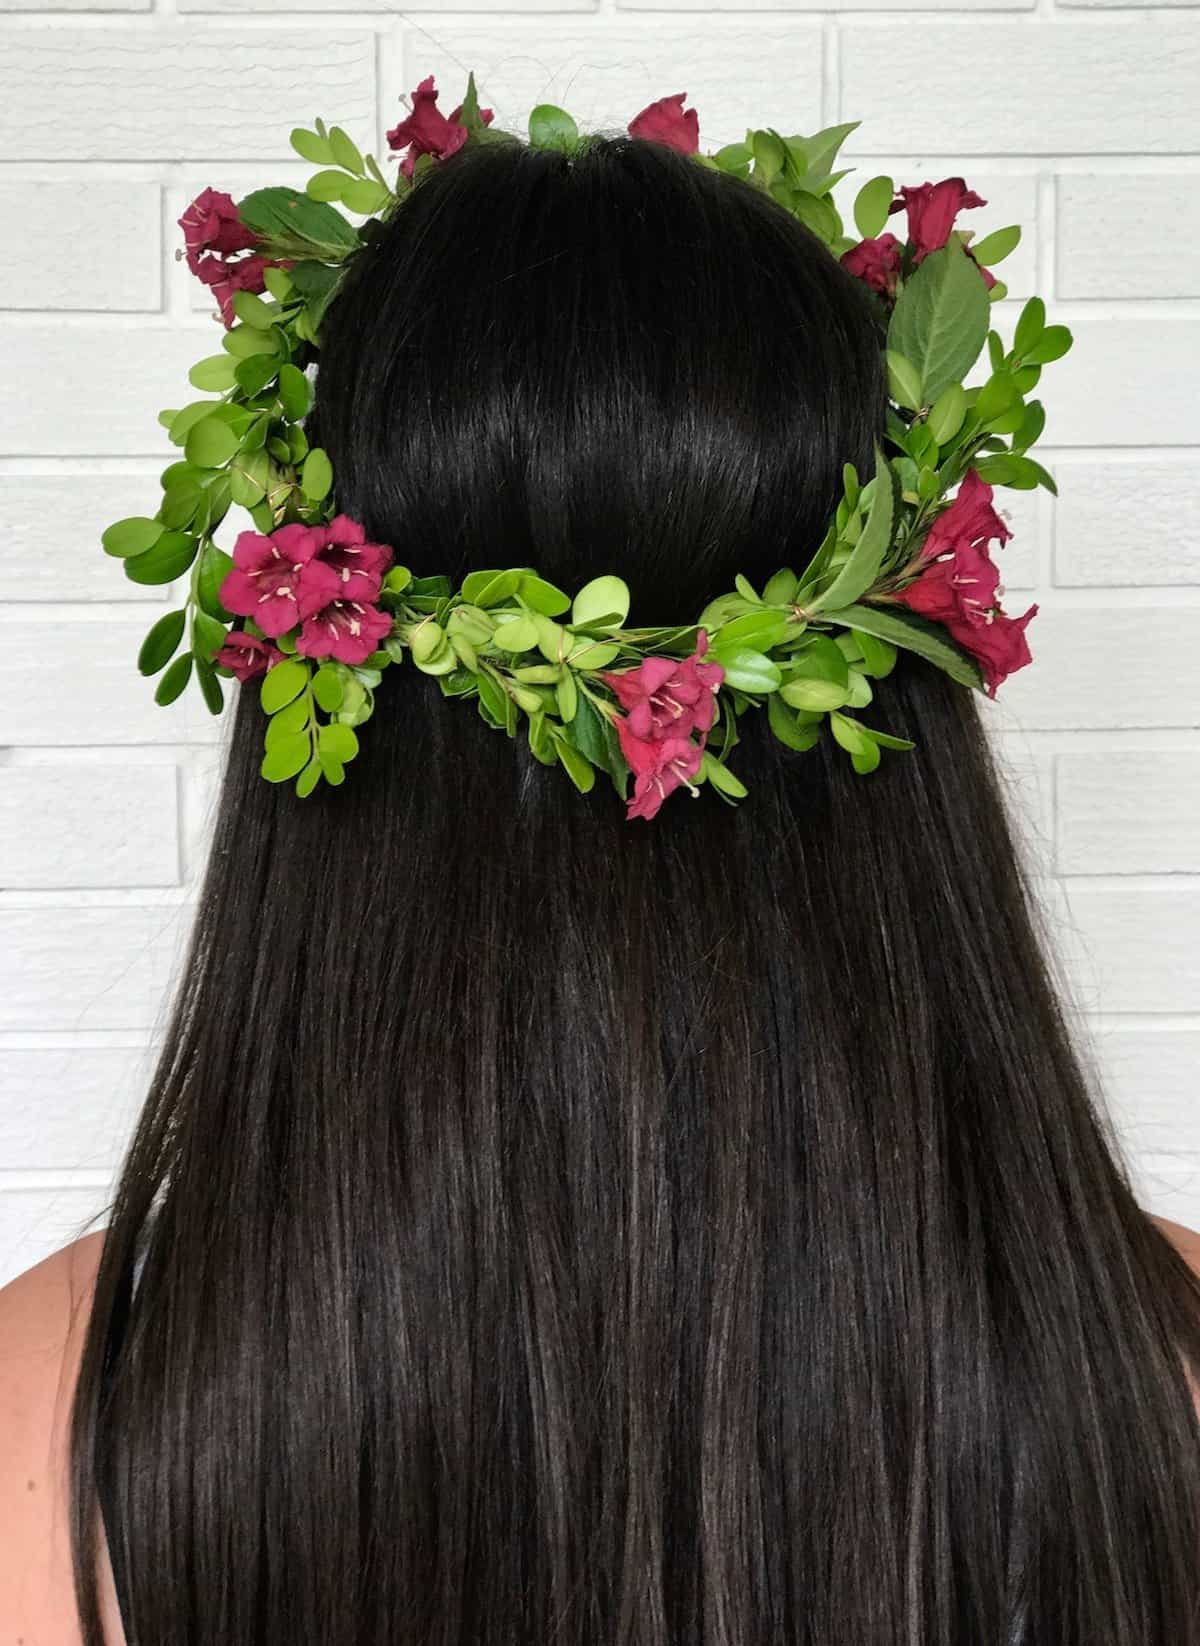 How to Make a Flower Crown with Real Flowers